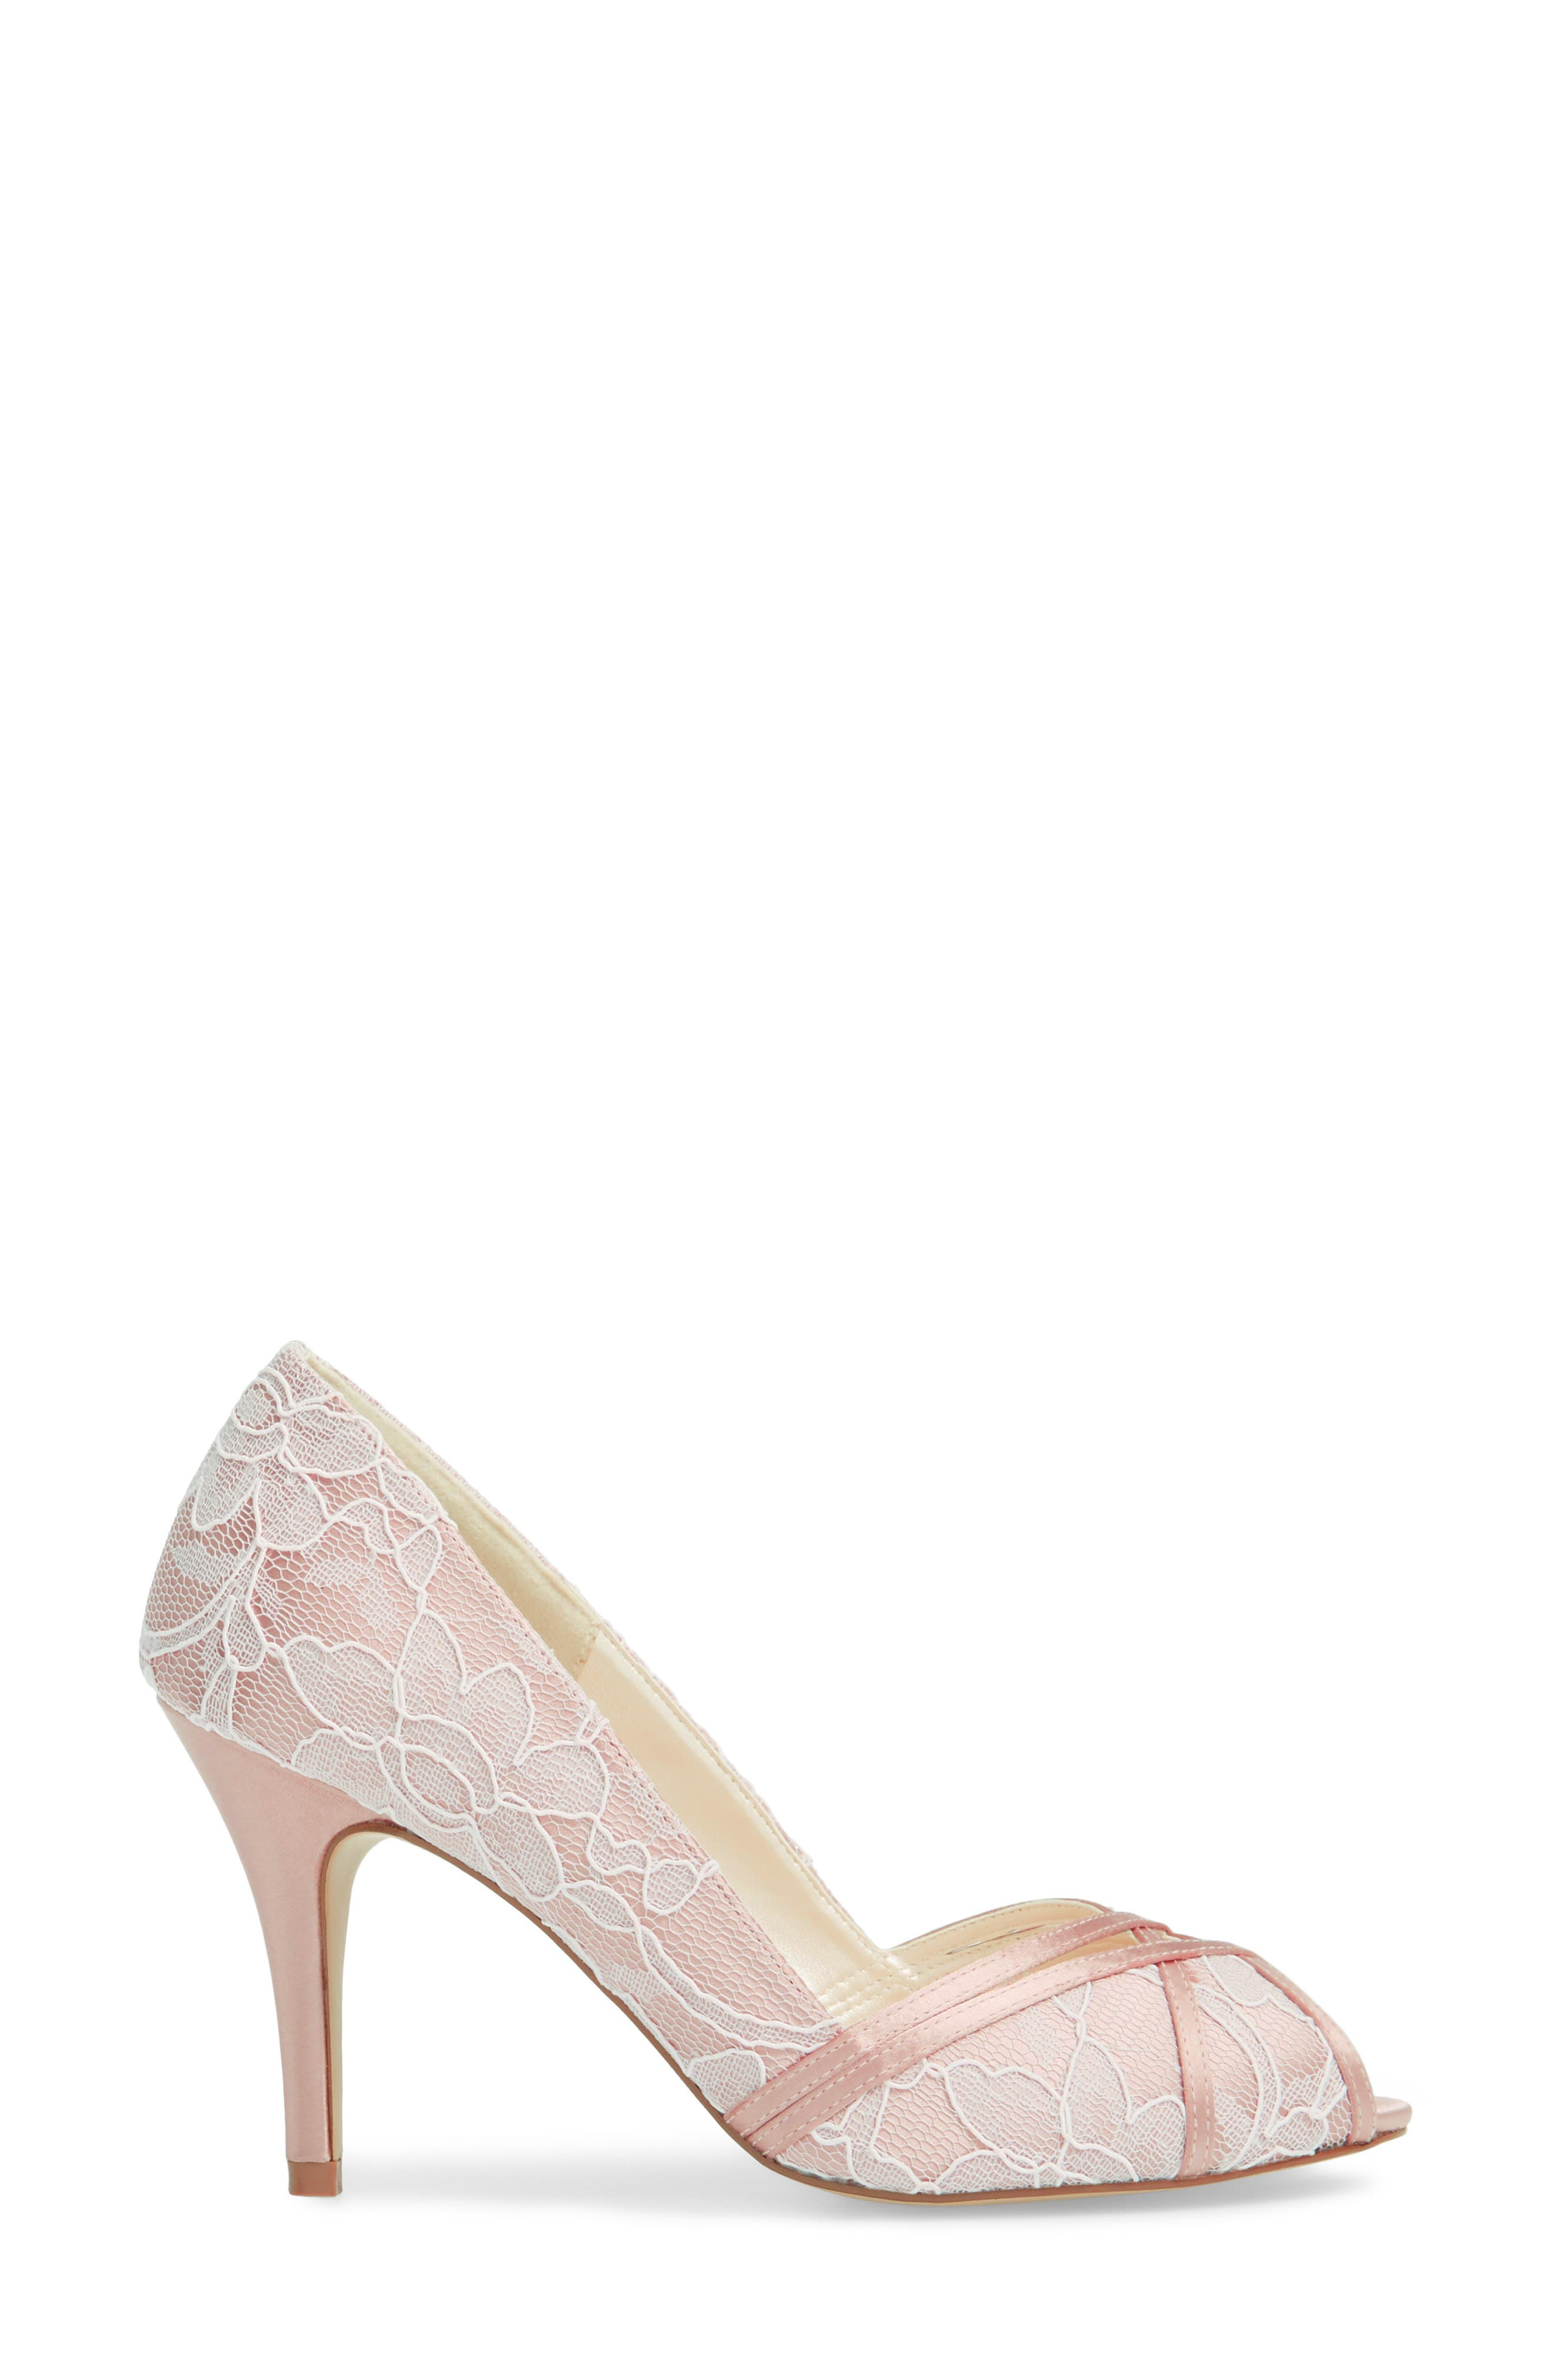 Cherie Embroidered Peep Toe Pump,                             Alternate thumbnail 3, color,                             BLUSH SATIN